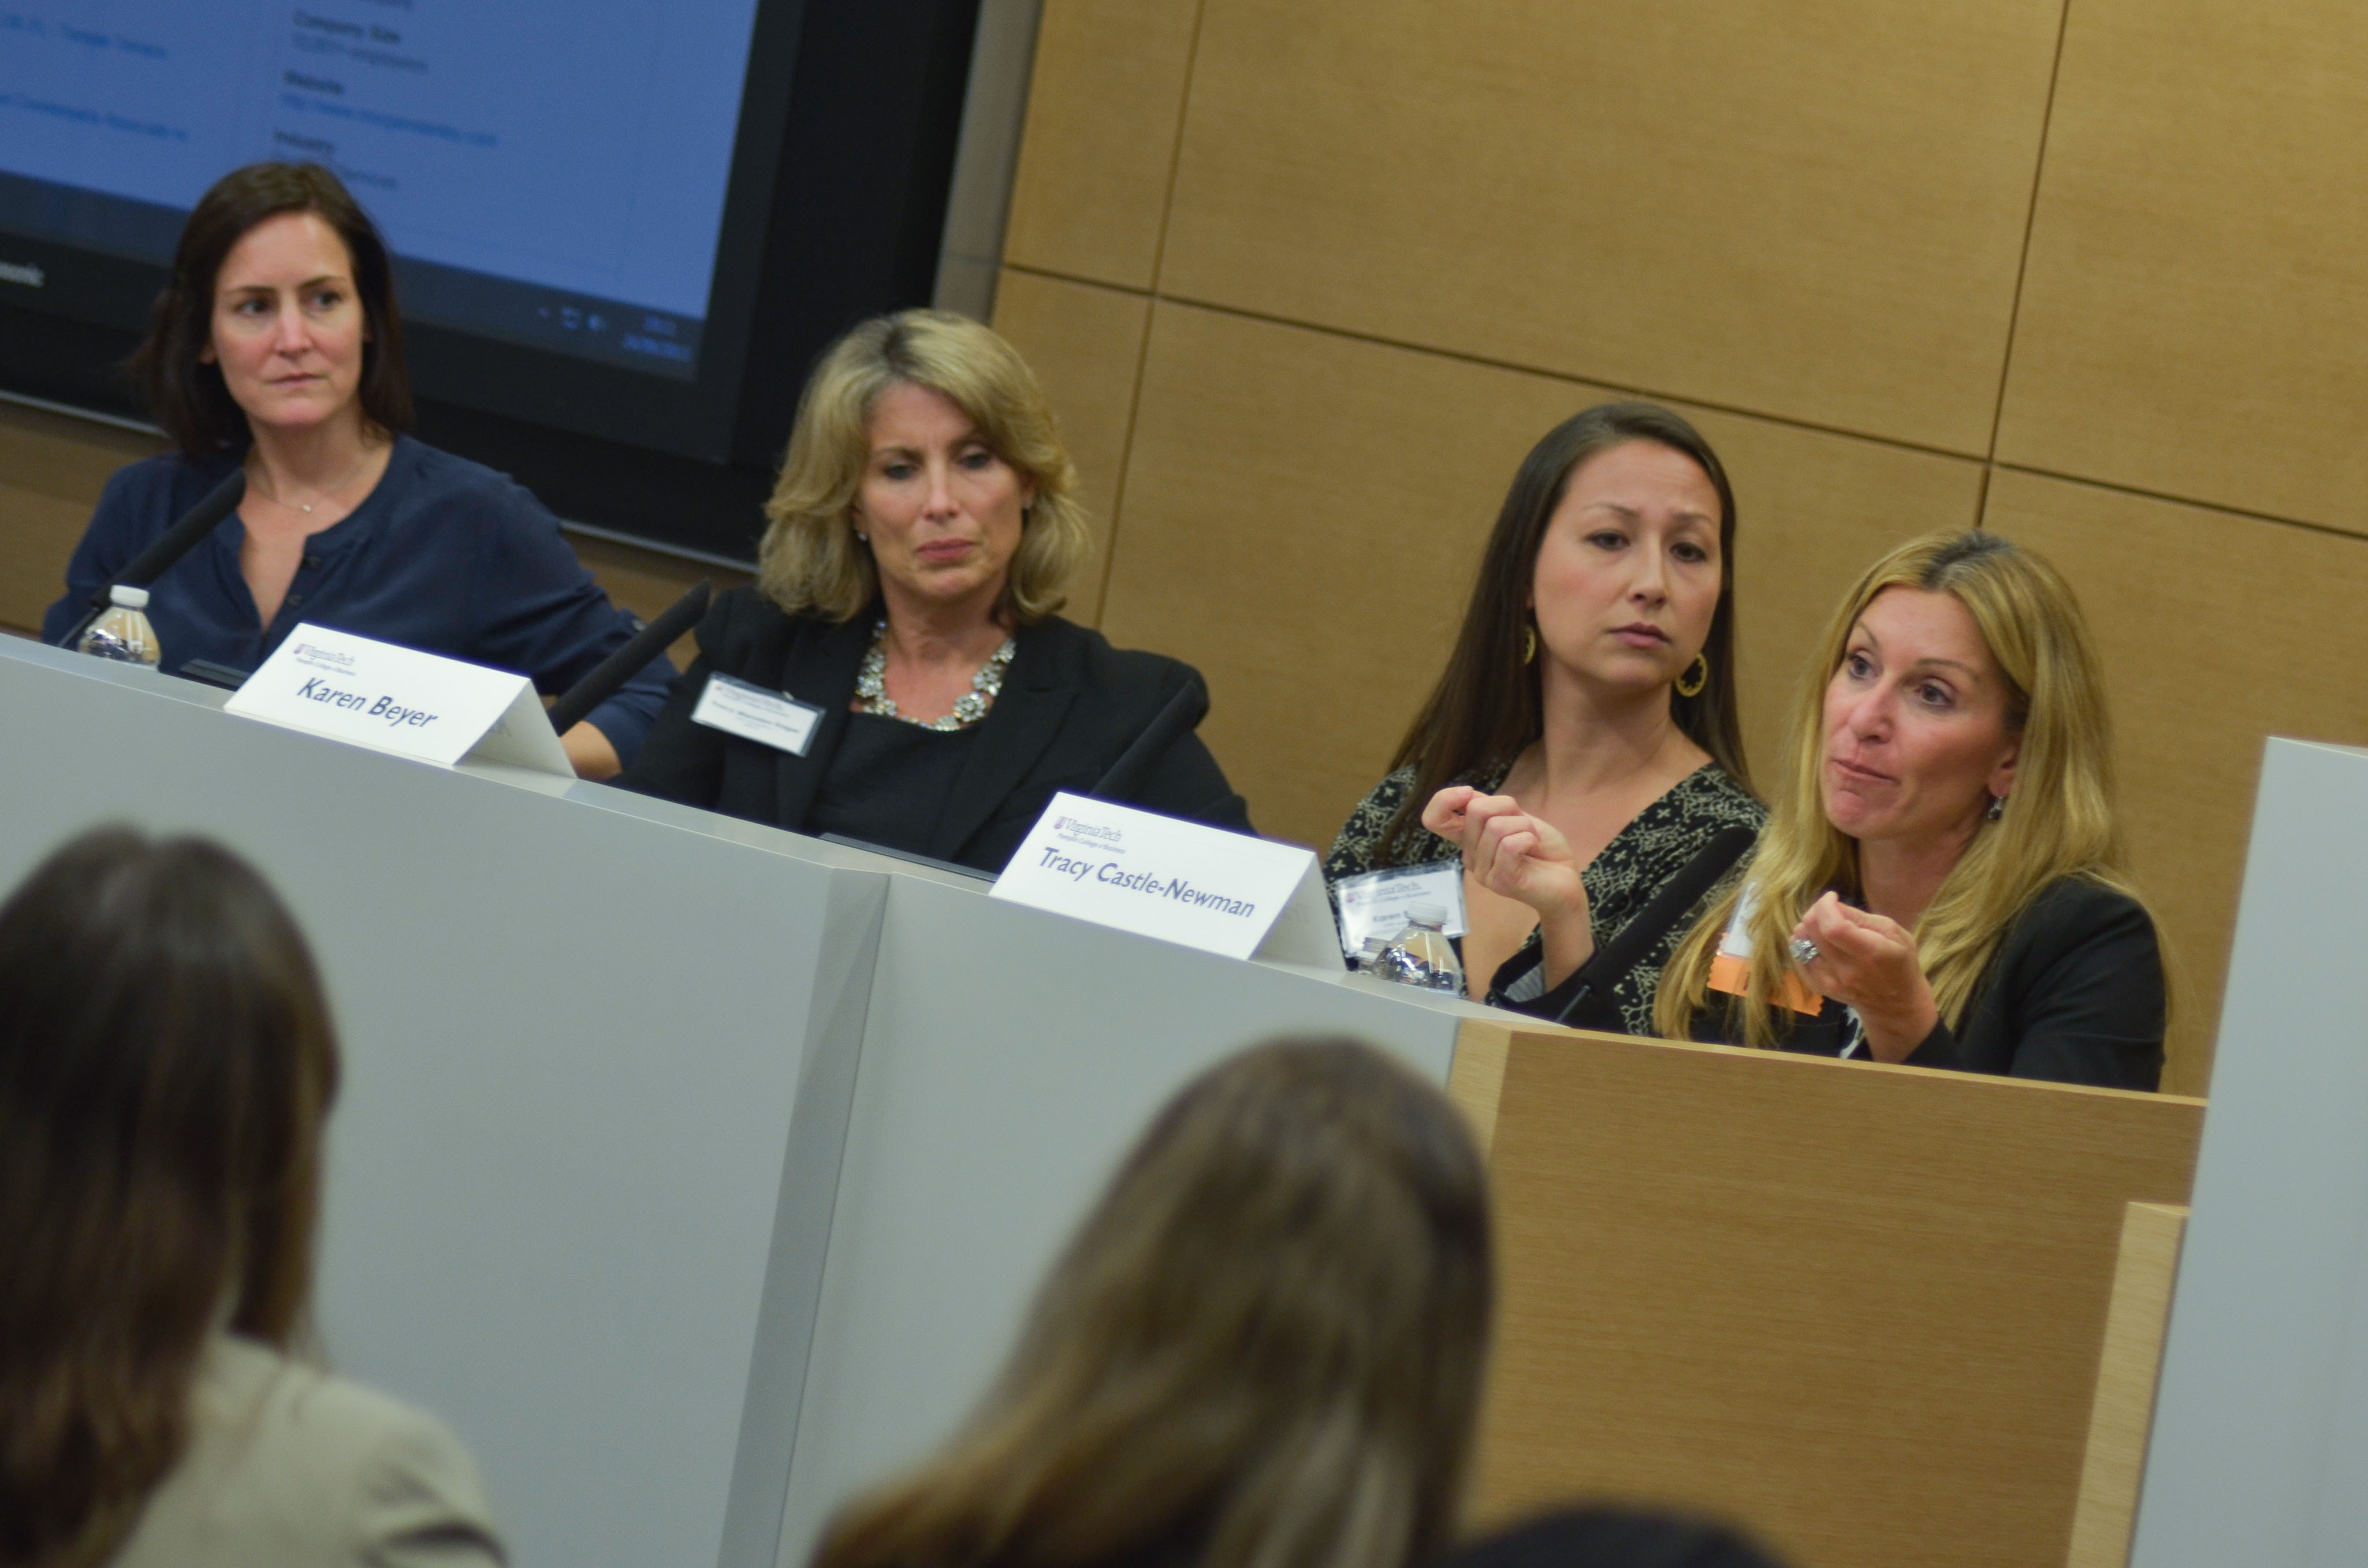 The Women in Business event last year in New York City featured several panelists, including Pamplin finance alumna and Morgan Stanley managing director Tracy Castle-Newman (far right).